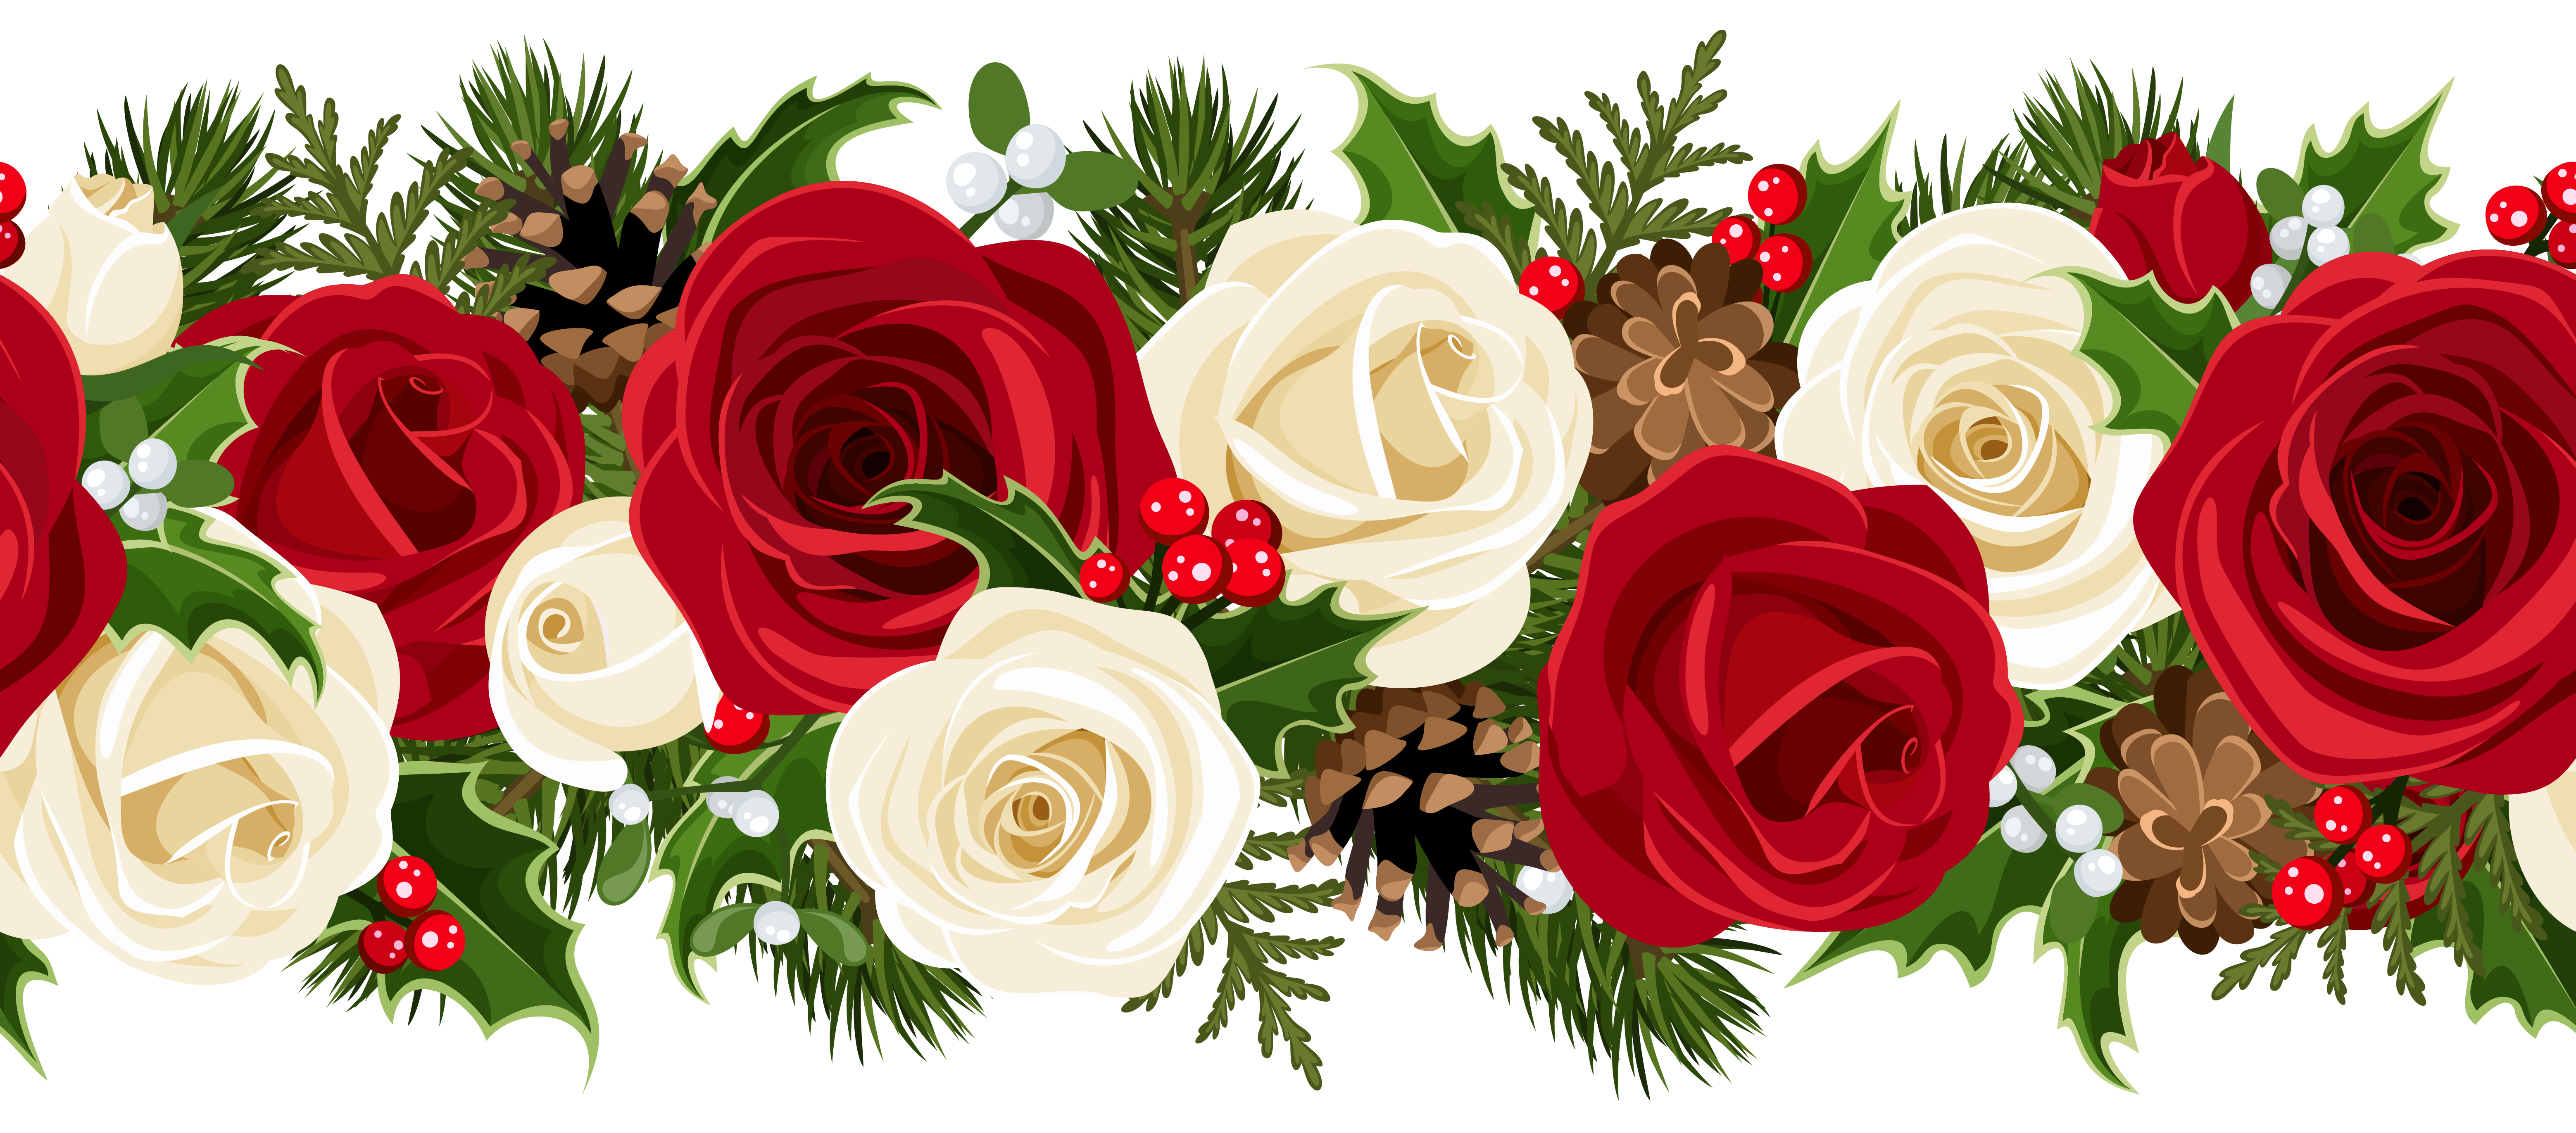 Christmas rose clip art. Garland png image image freeuse download